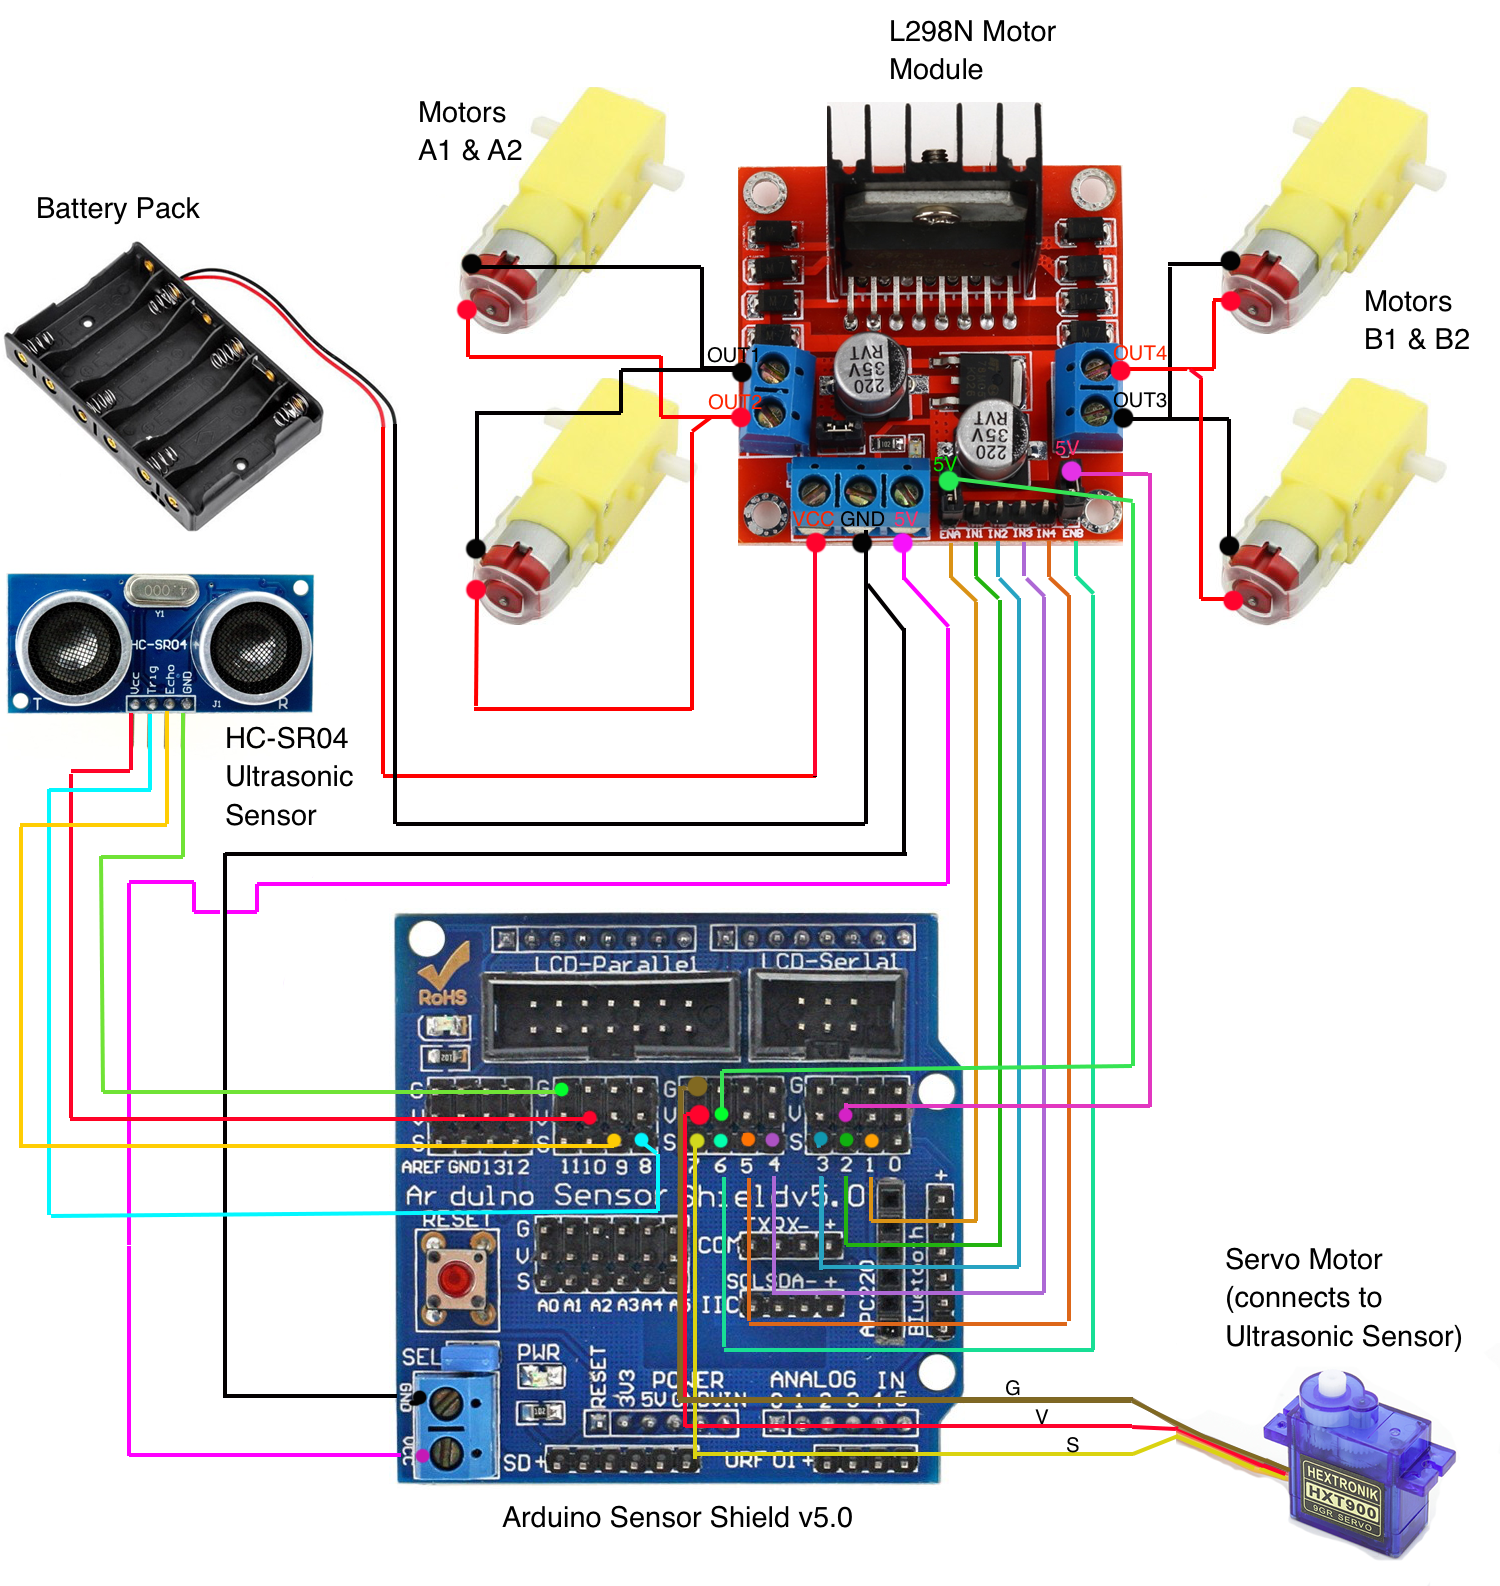 Wiring diagram. Click for larger image